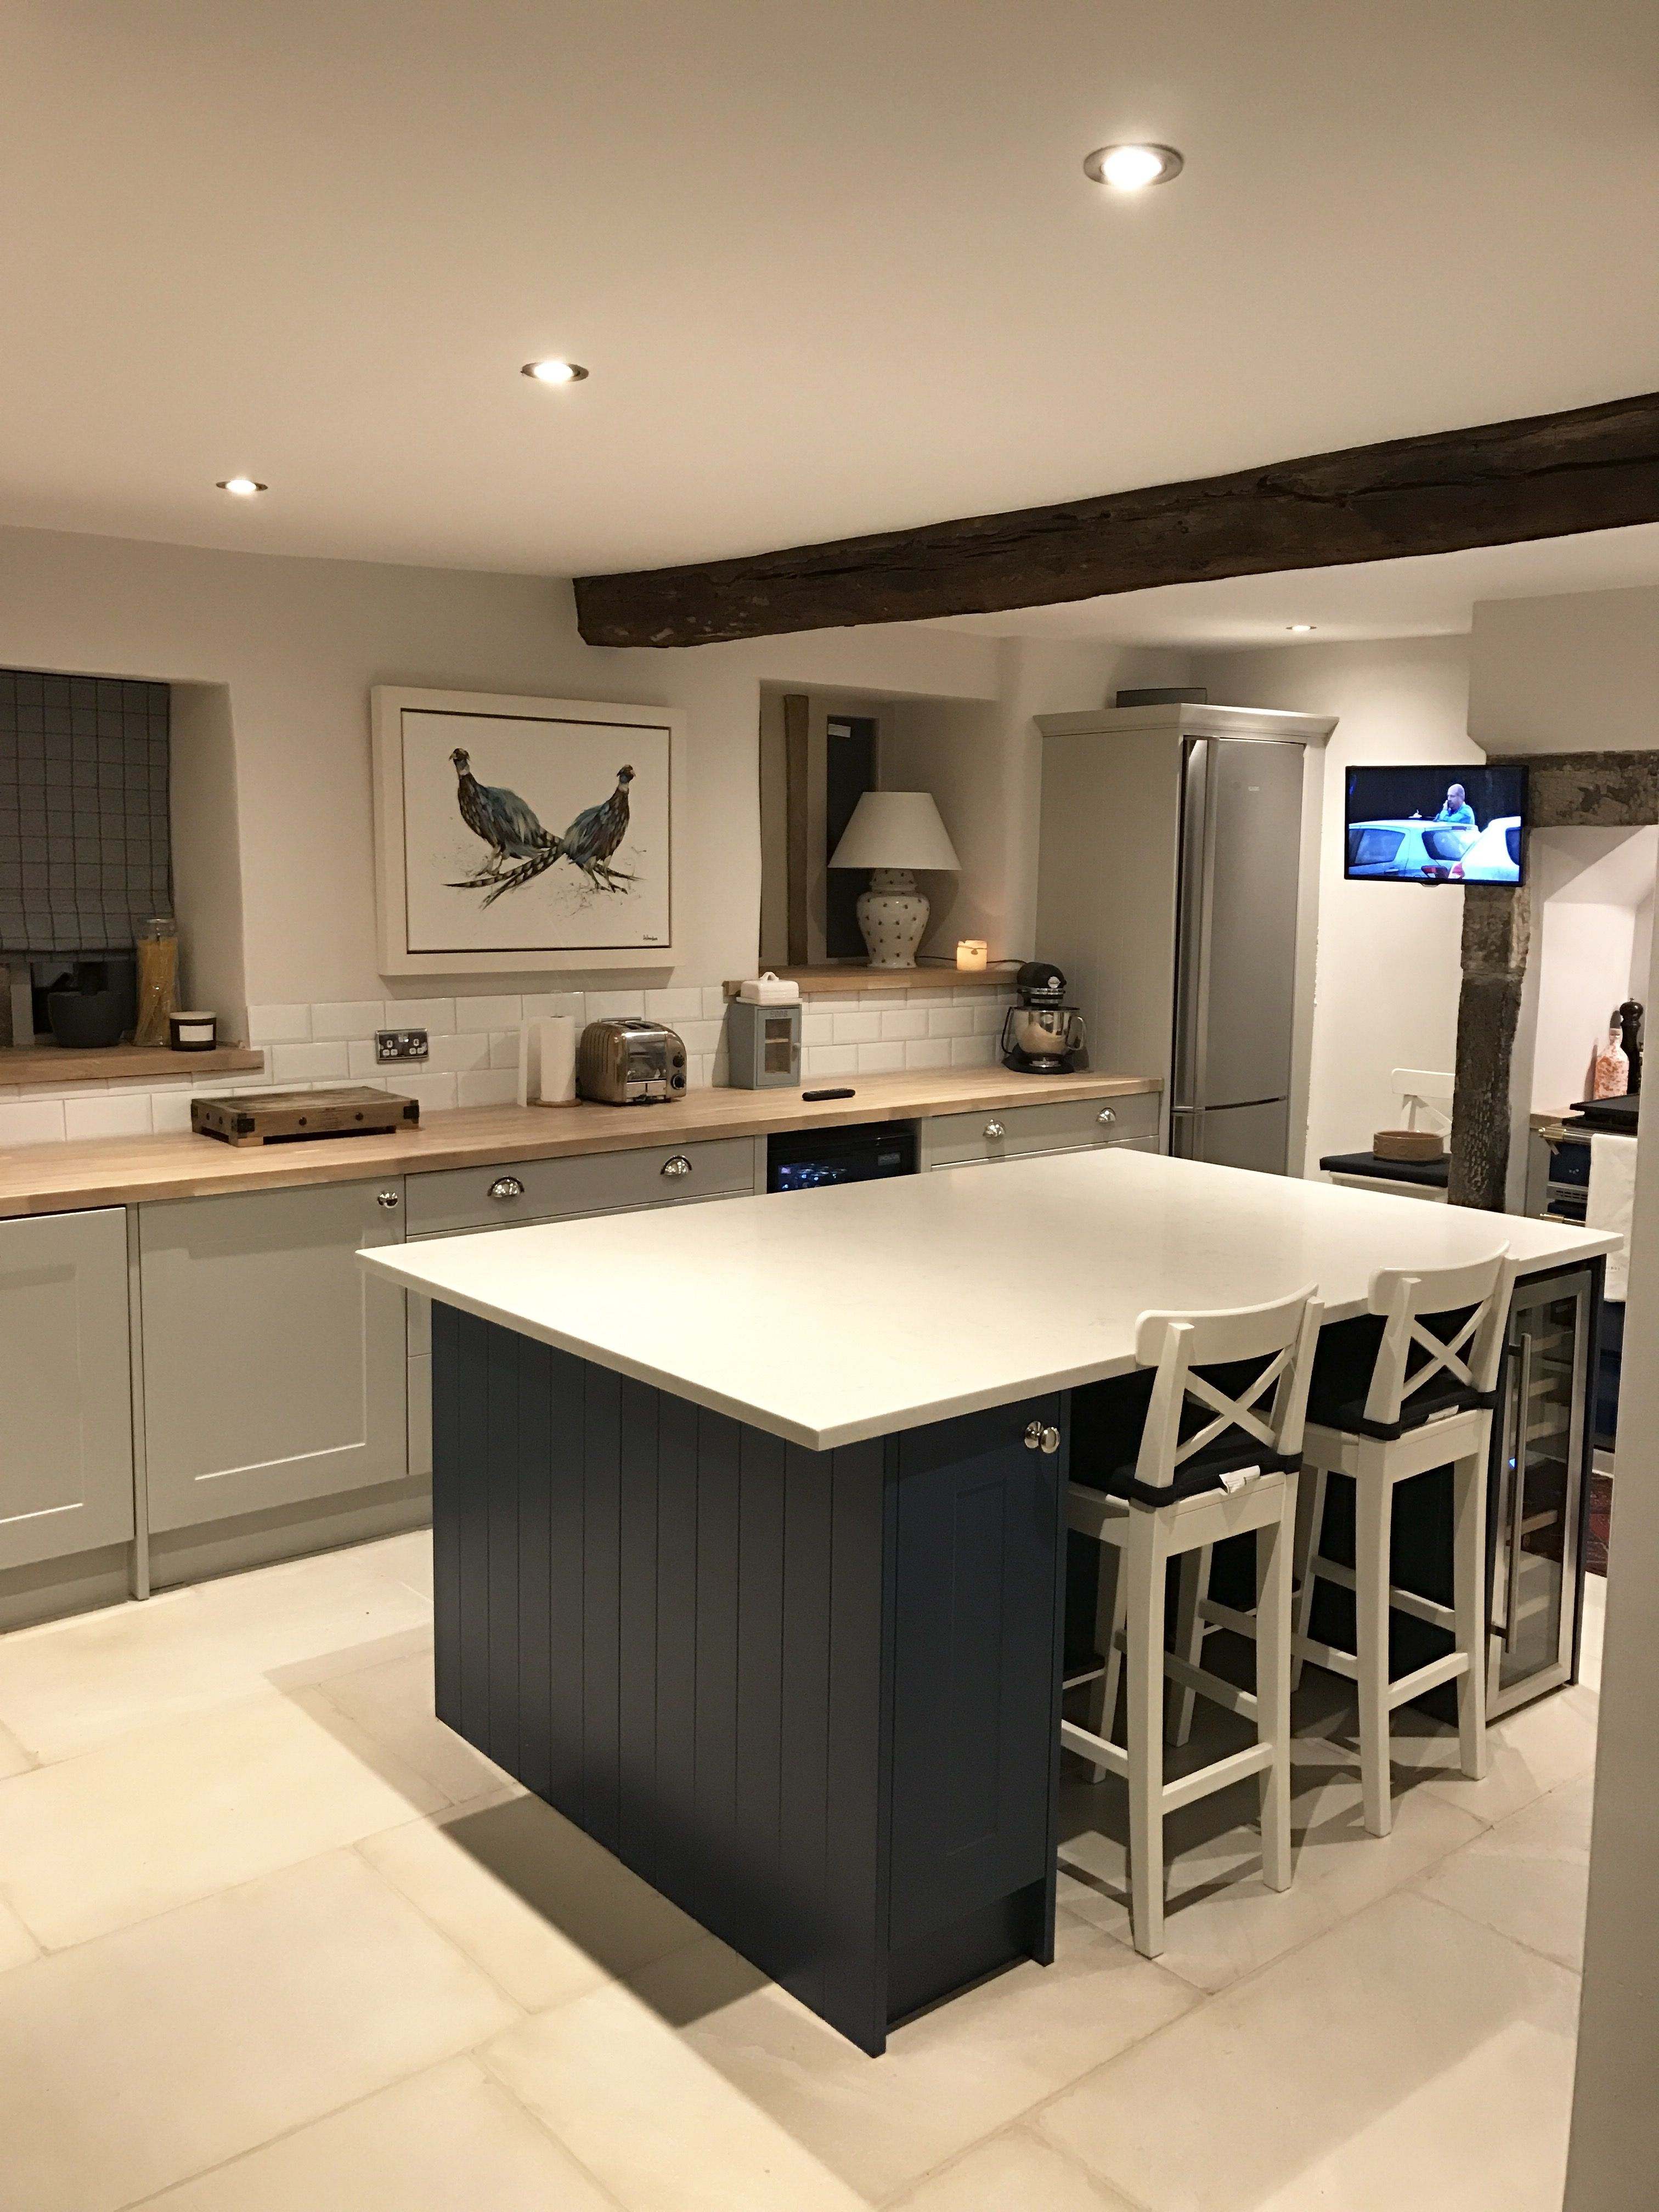 Best Blue Island Kitchen In Yorkshire Cottage Farrow And Ball 400 x 300